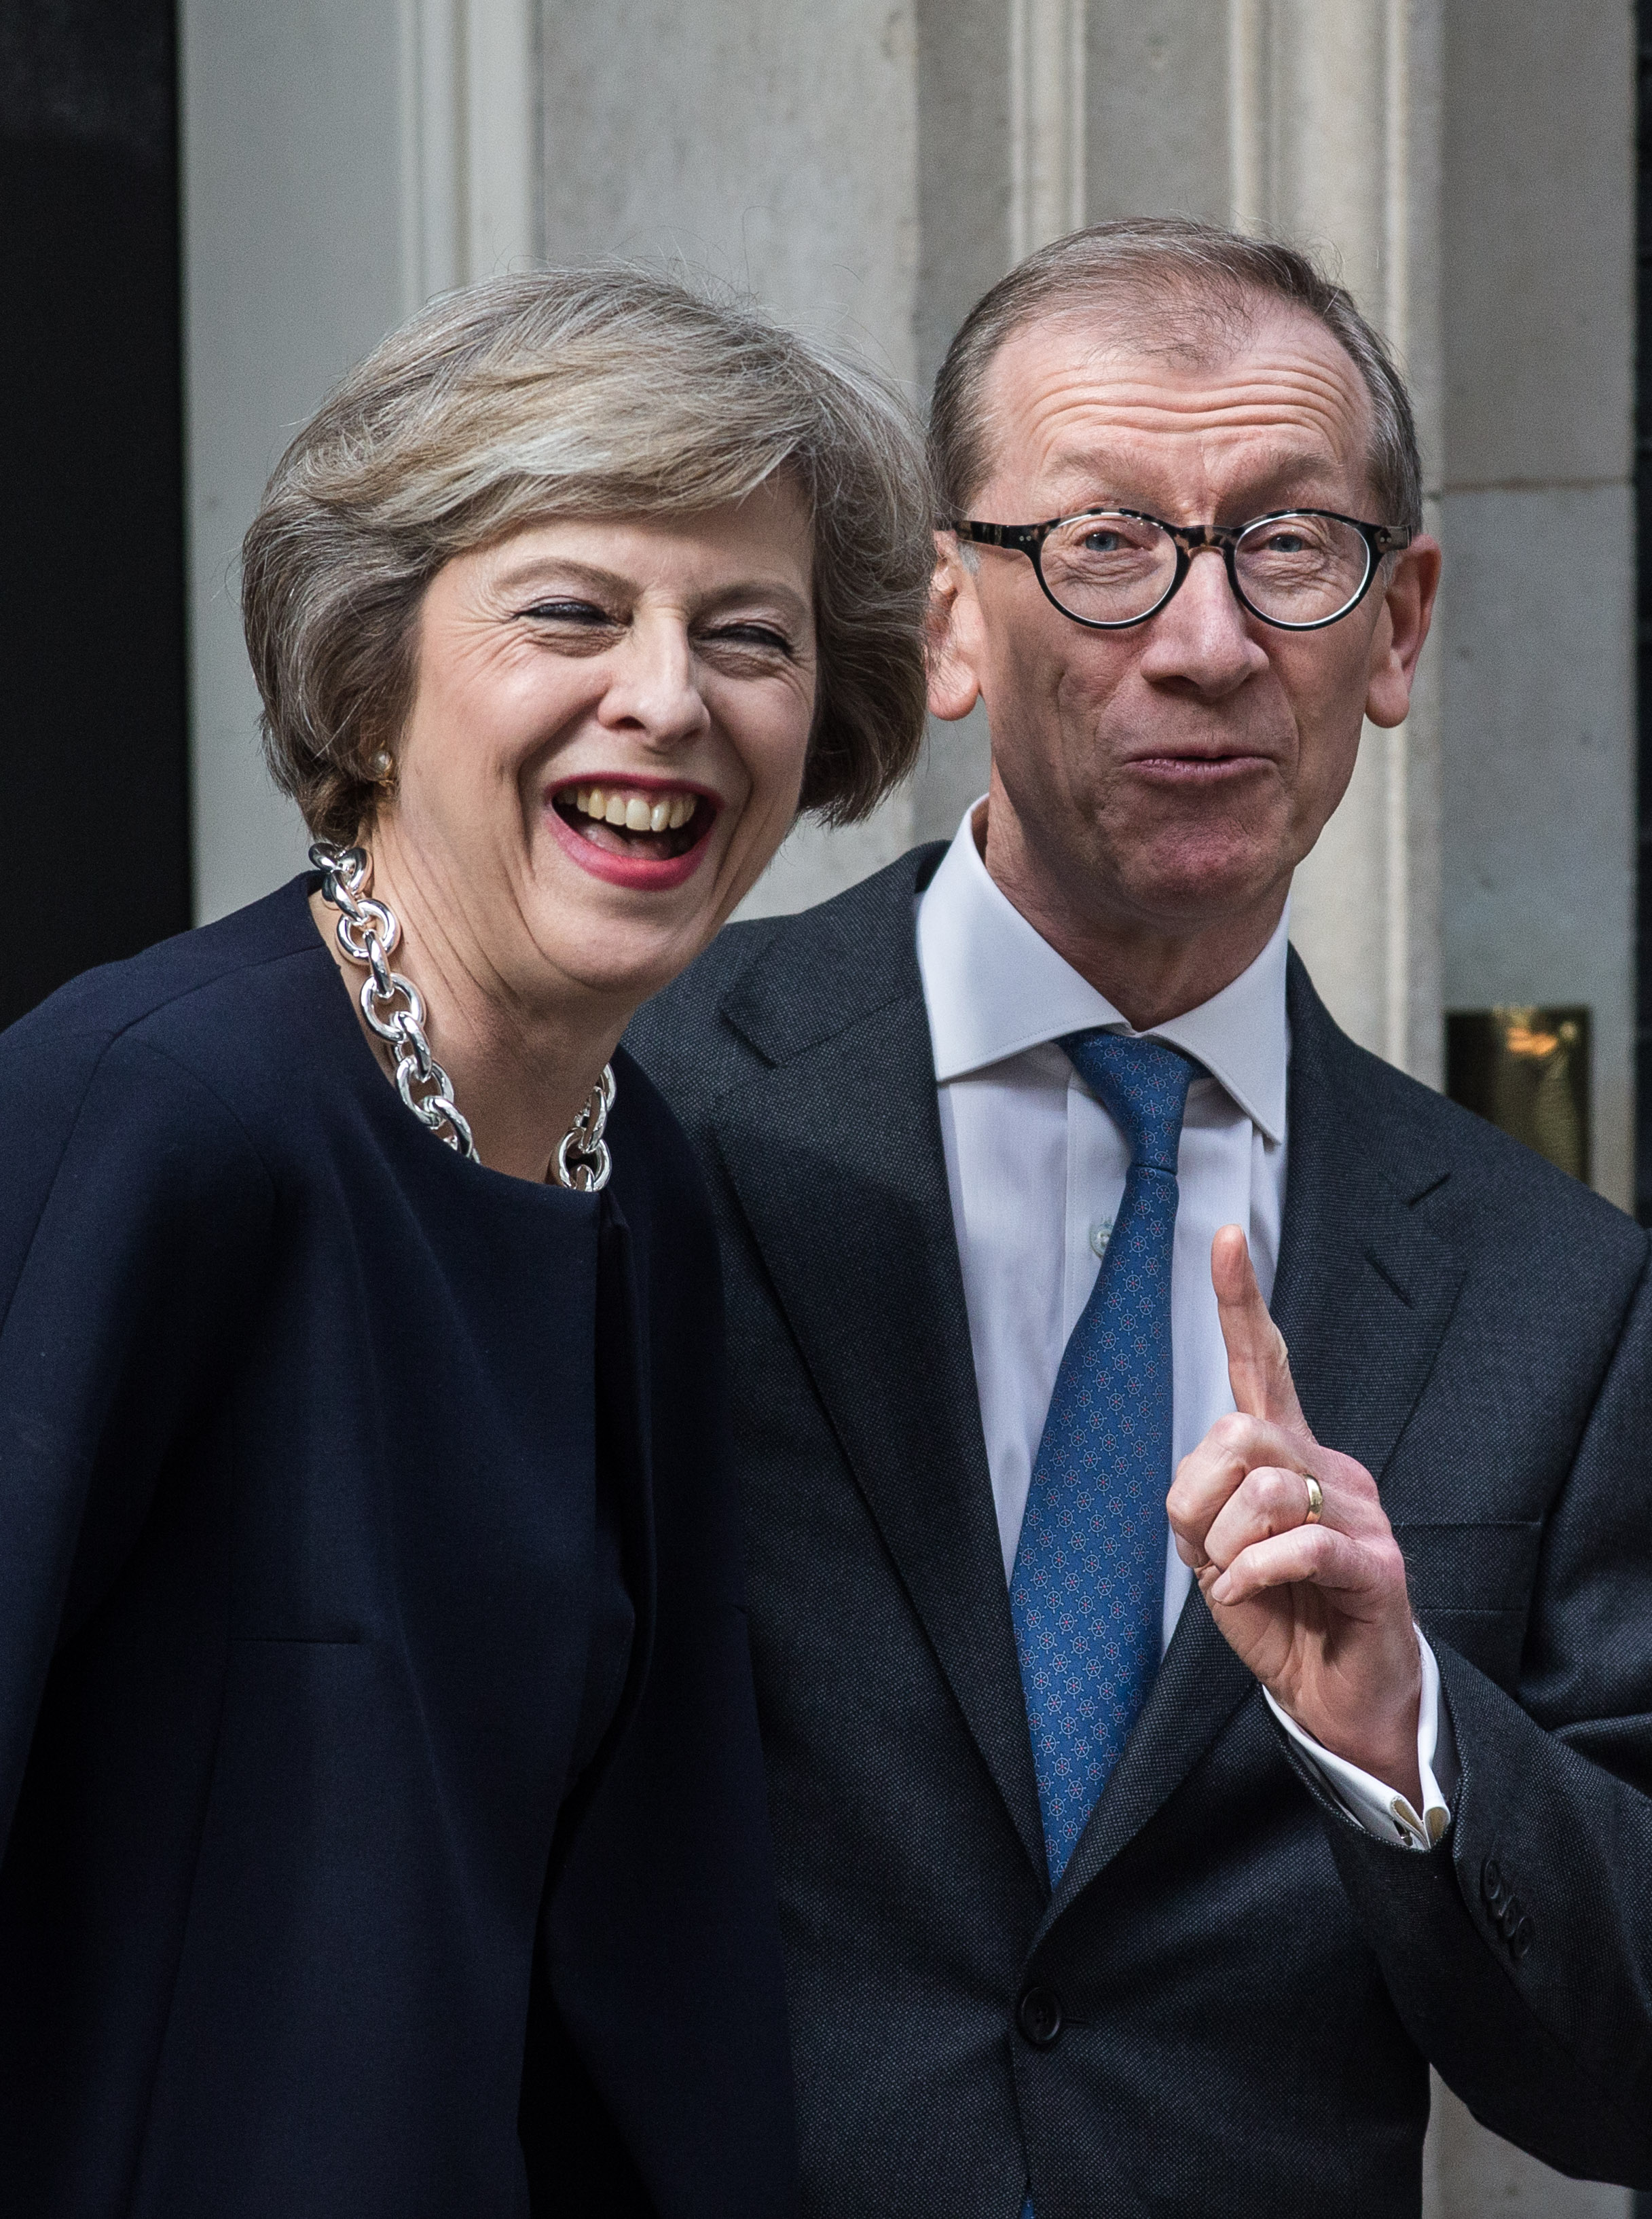 Theresa May and Philip May arriving at 10 Downing Street